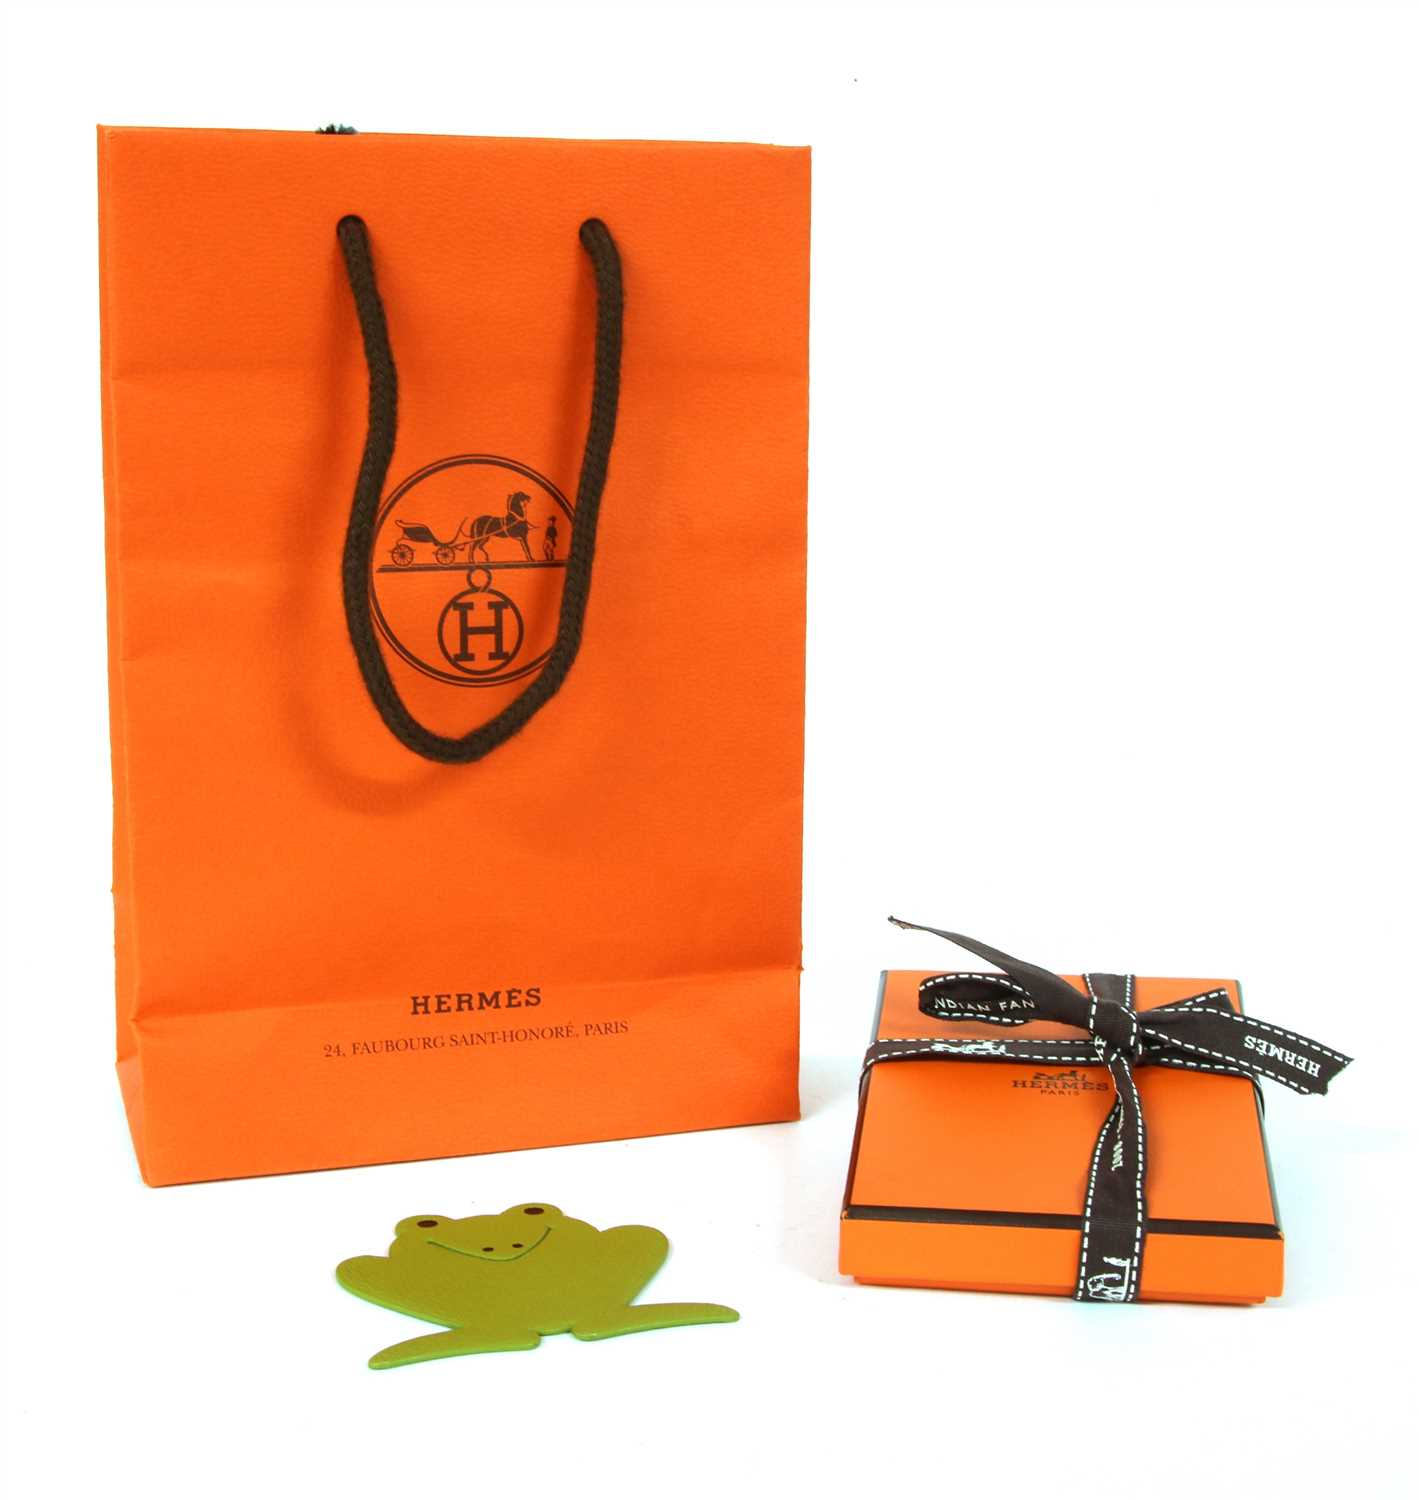 Lot 223 - A Hermes Pikabook green leather frog